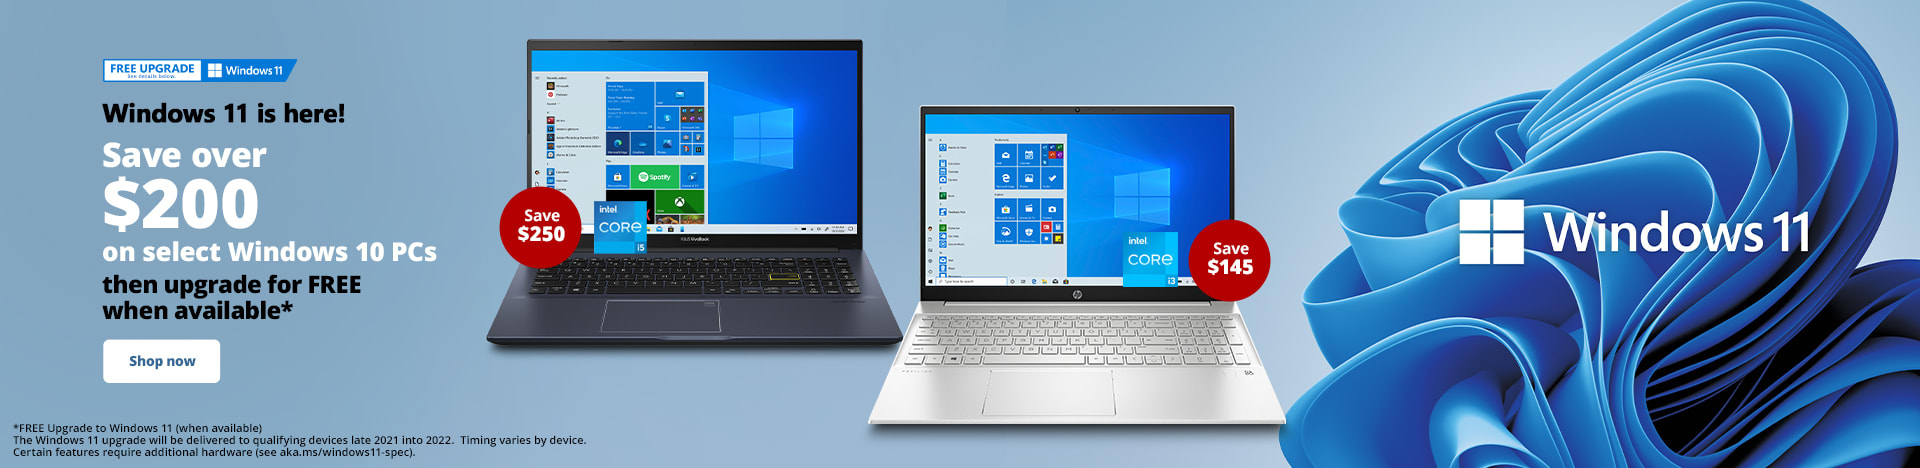 Windows 11 is here! Save over $200 on select Windows 10 PCs then upgrade for FREE when available*